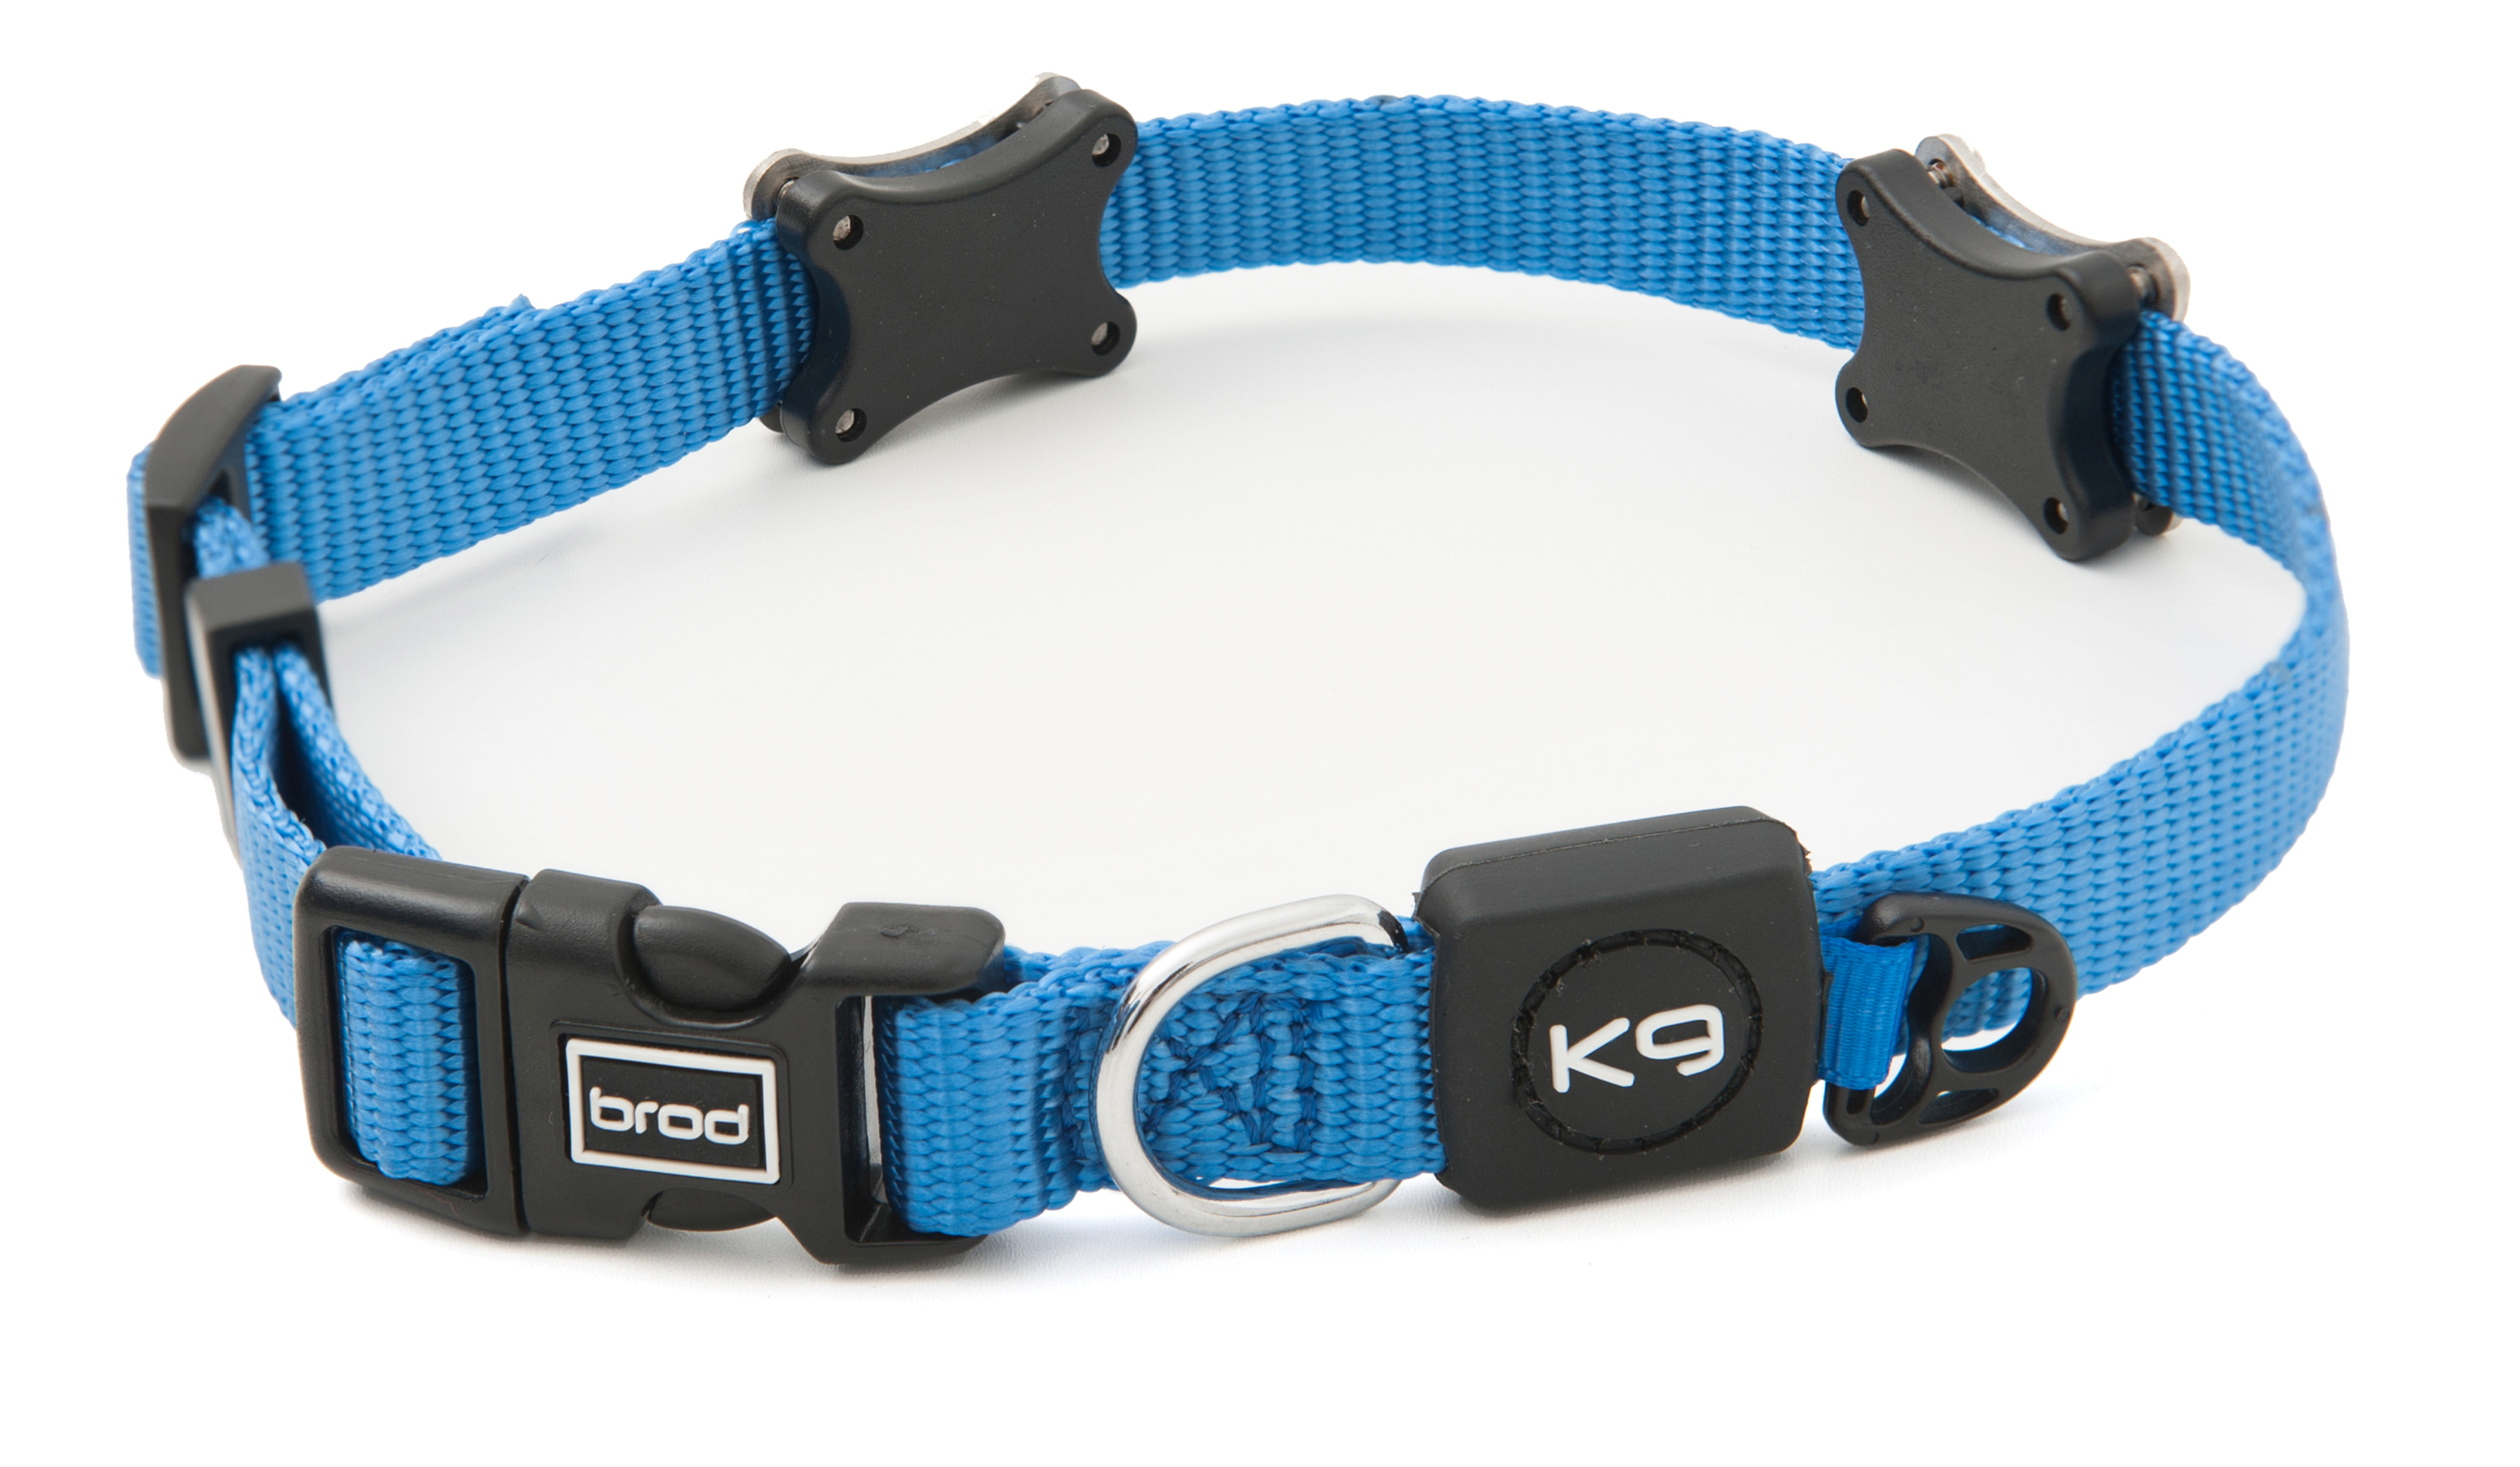 BrodPod magnetic collar